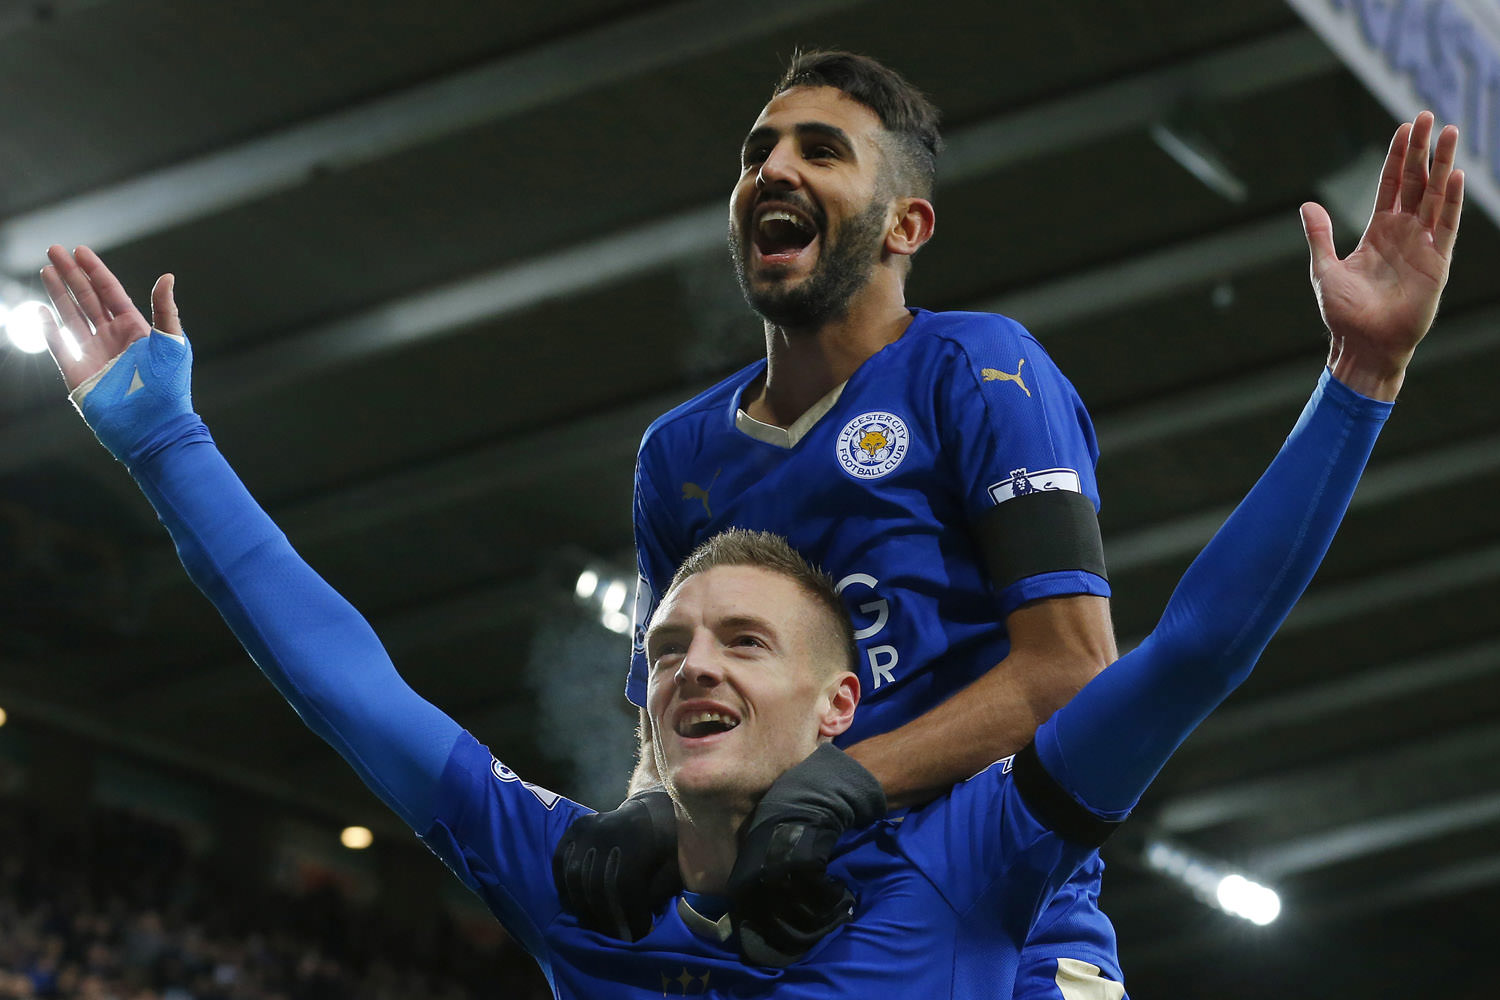 Jamie Vardy and Riyadh Mahrez were on the form of their life last season, providing a cutting edge to Claudio Ranieri's Foxes